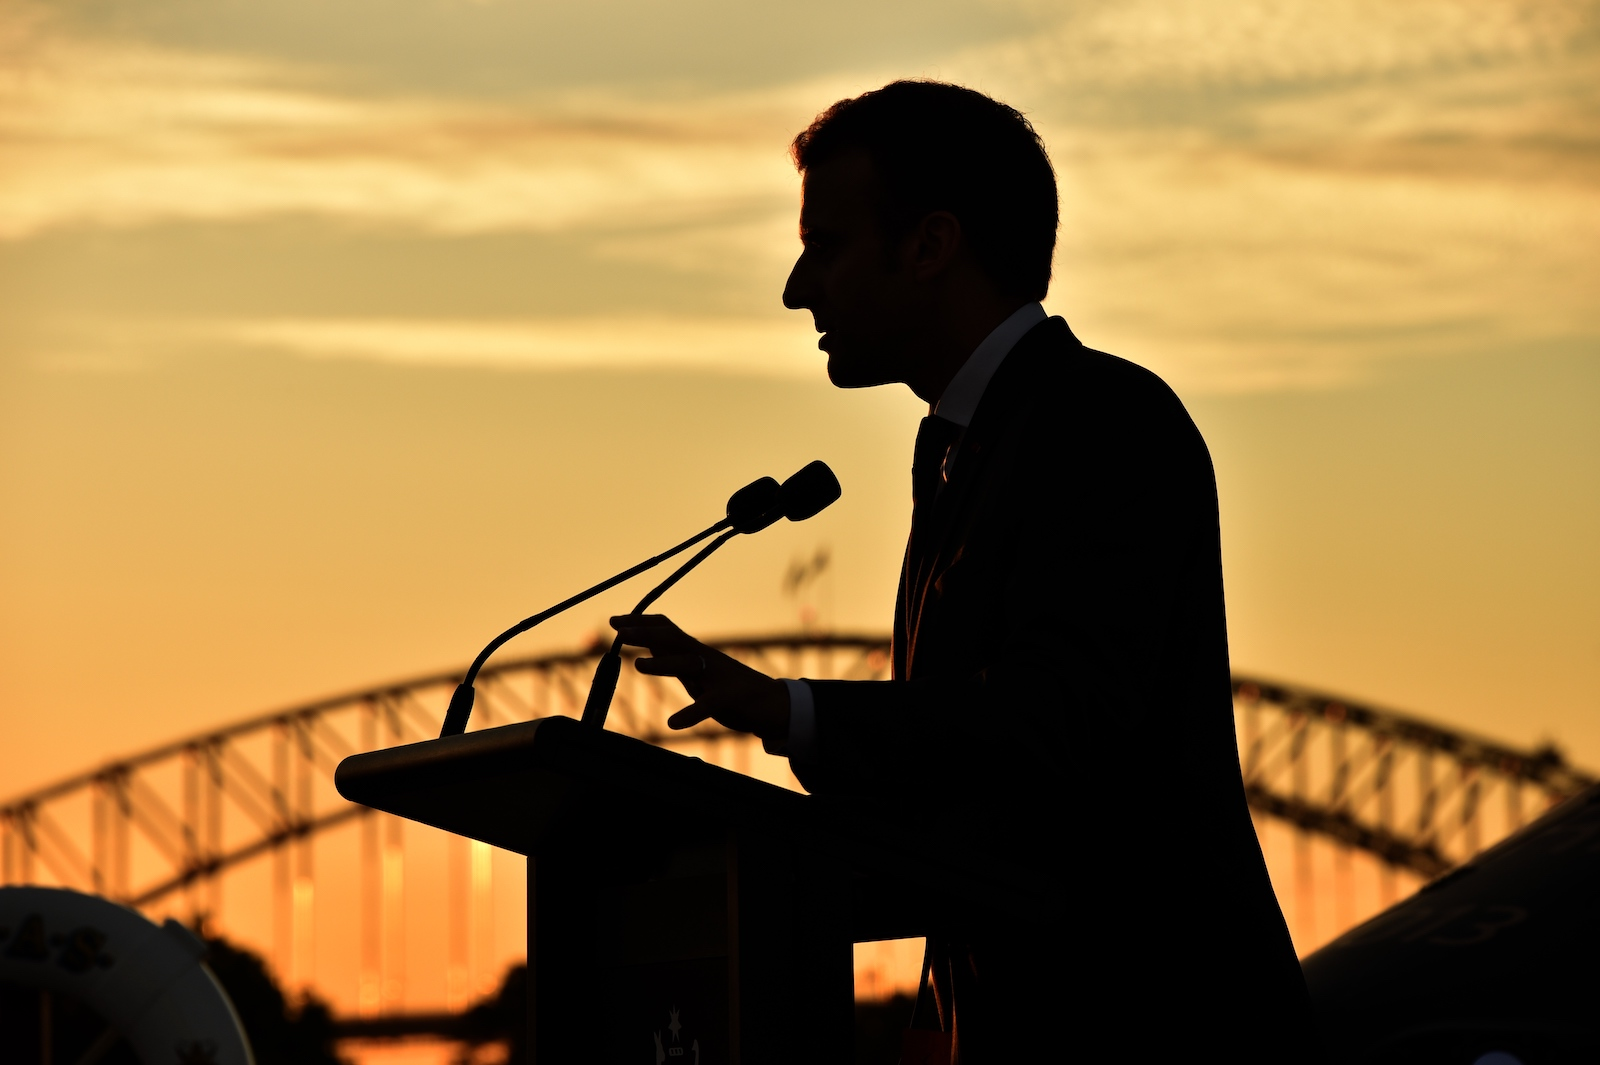 French President Emmanuel Macron delivers a speech onboard HMAS Canberra in Sydney on 2 May 2018 (Peter Parks/AFP via Getty Images)